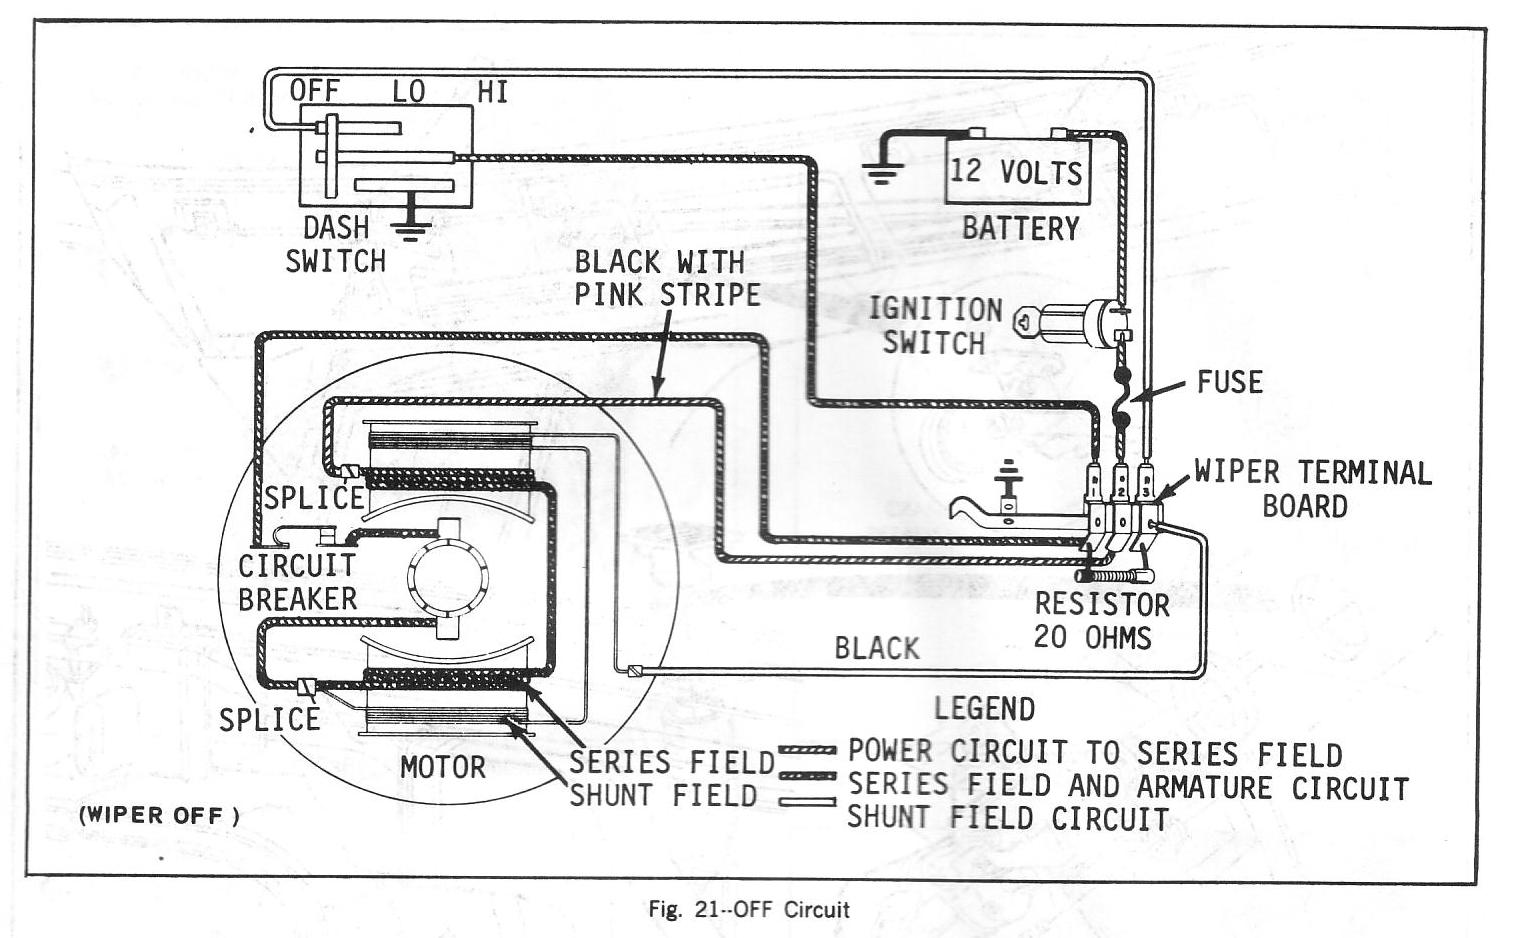 1973 Ford Windshield Wiper Wiring Diagram - wiring diagram circuit-total1 -  circuit-total1.hoteloctavia.it | 1980 Ford F 150 Wiper Switch Wiring Diagram |  | hoteloctavia.it